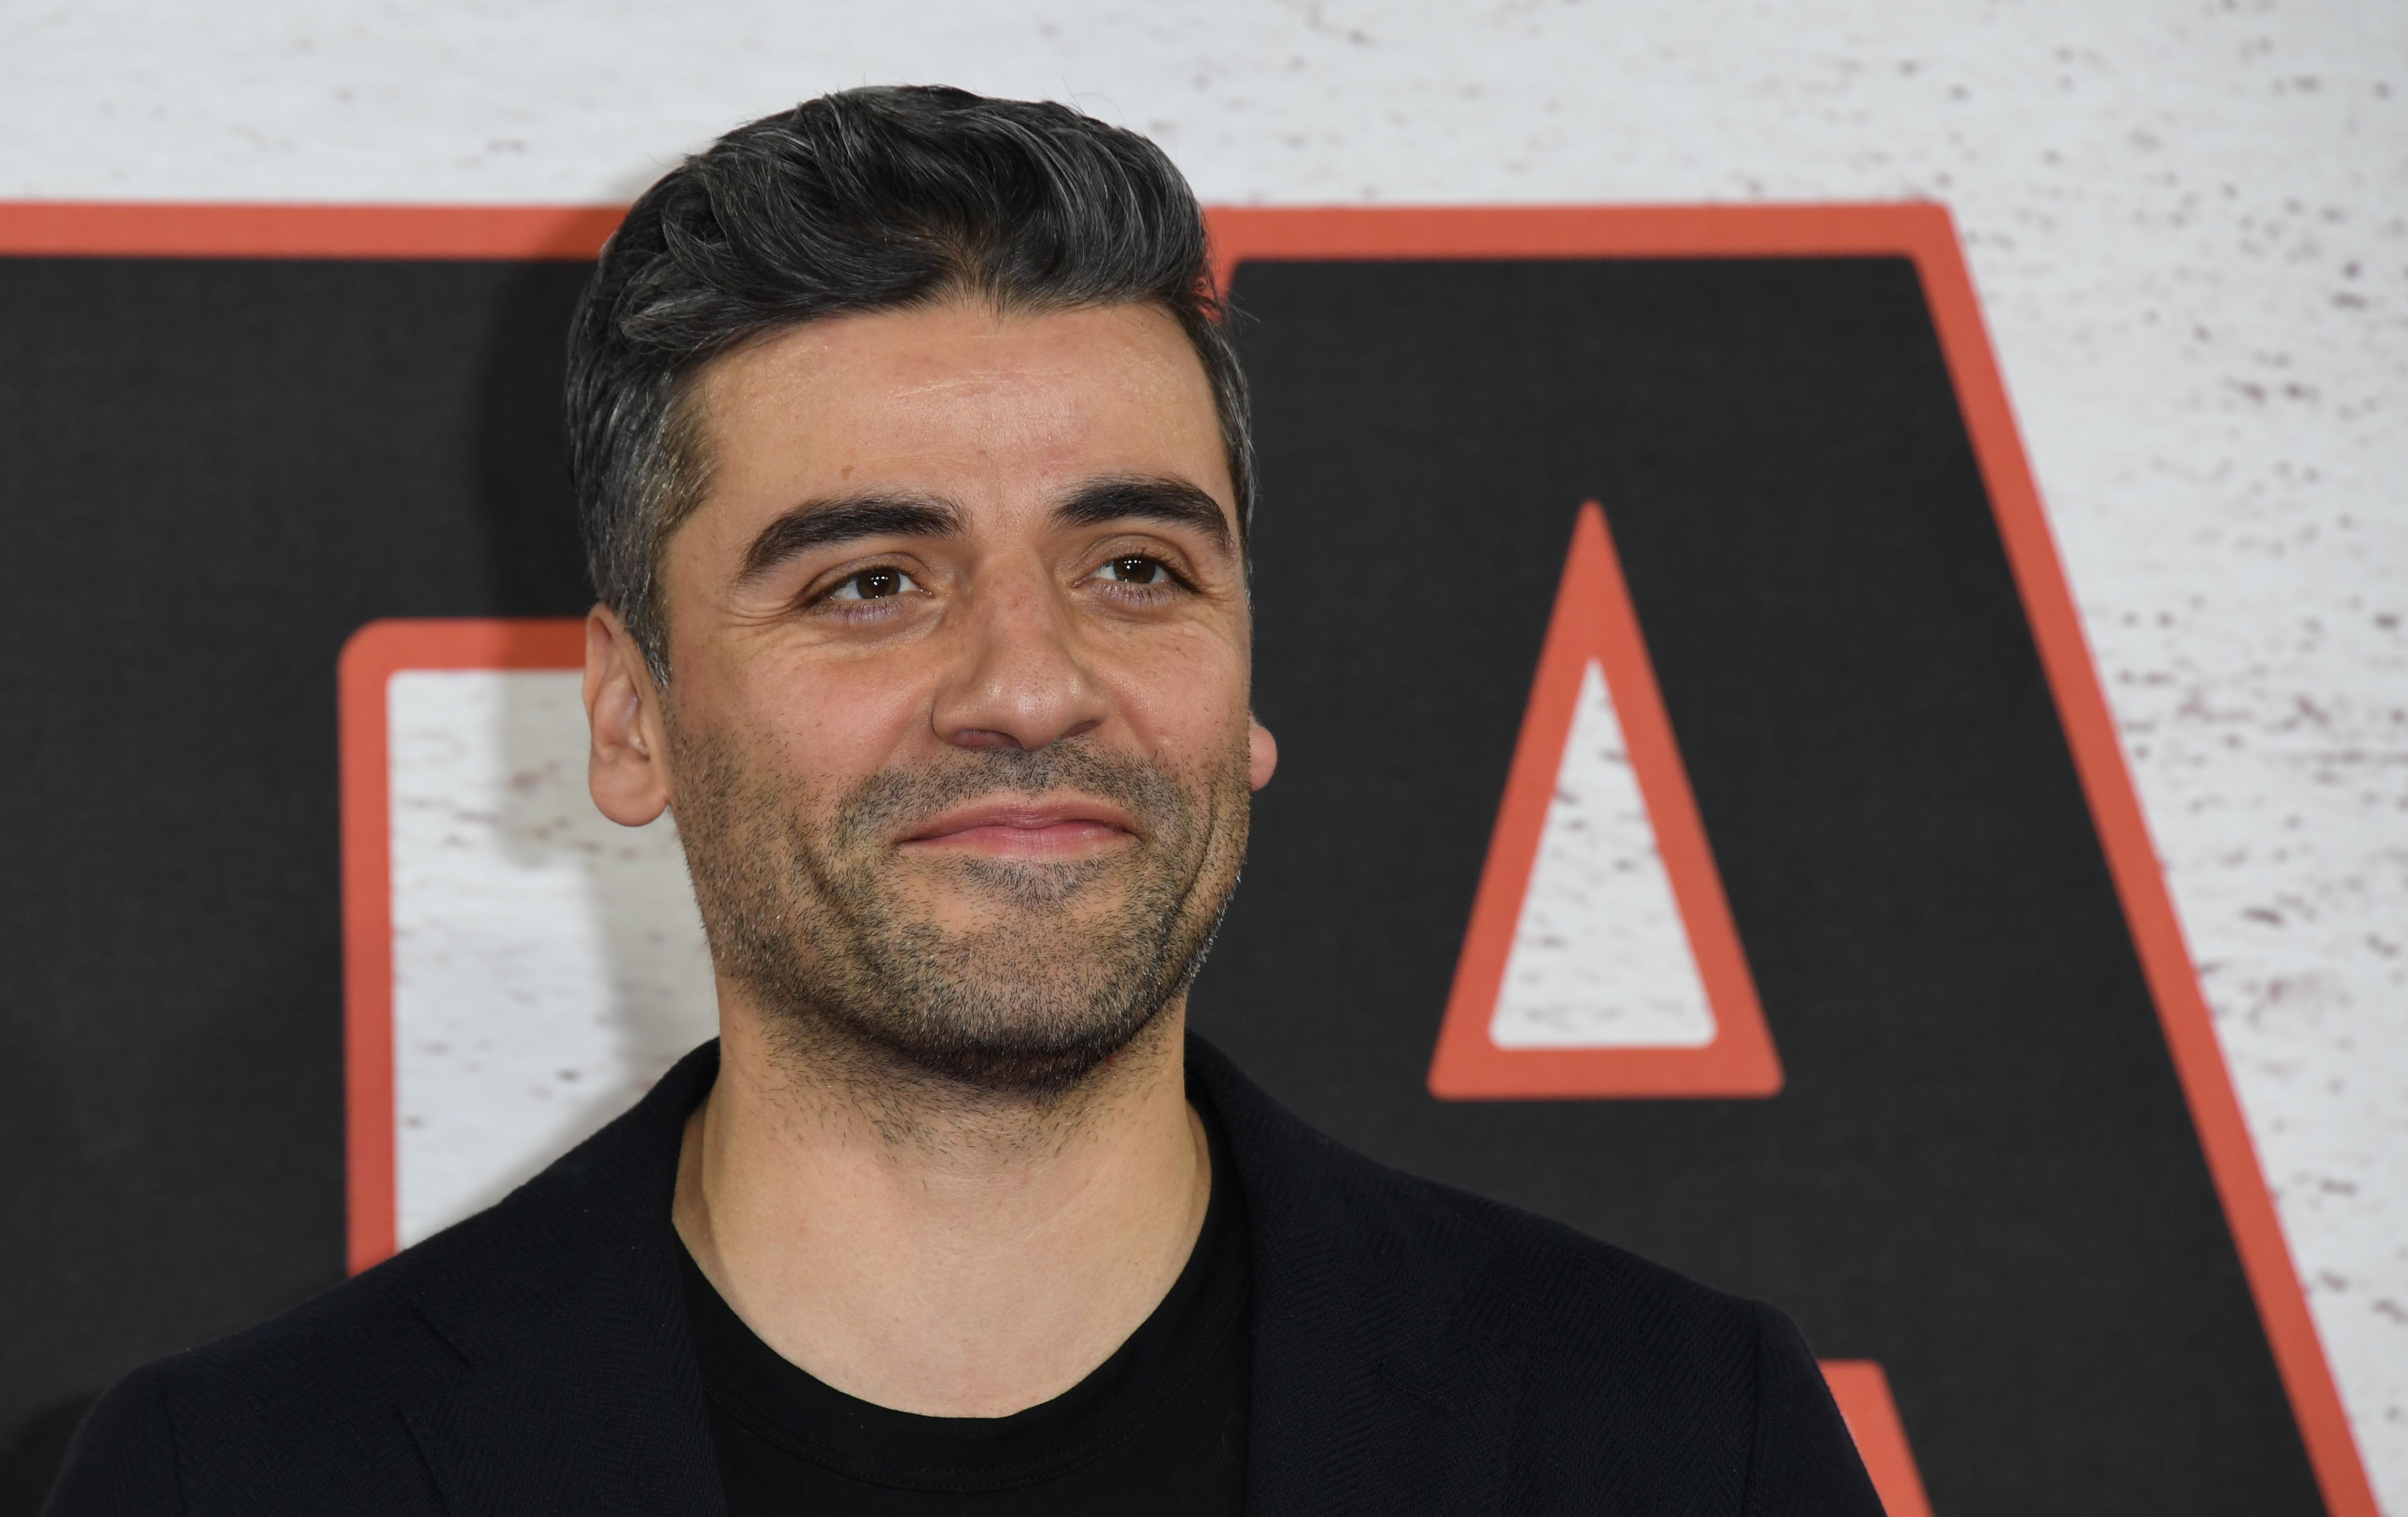 The WTF Story of How Oscar Isaac's Abuelo Pretended to Lose a Nalga